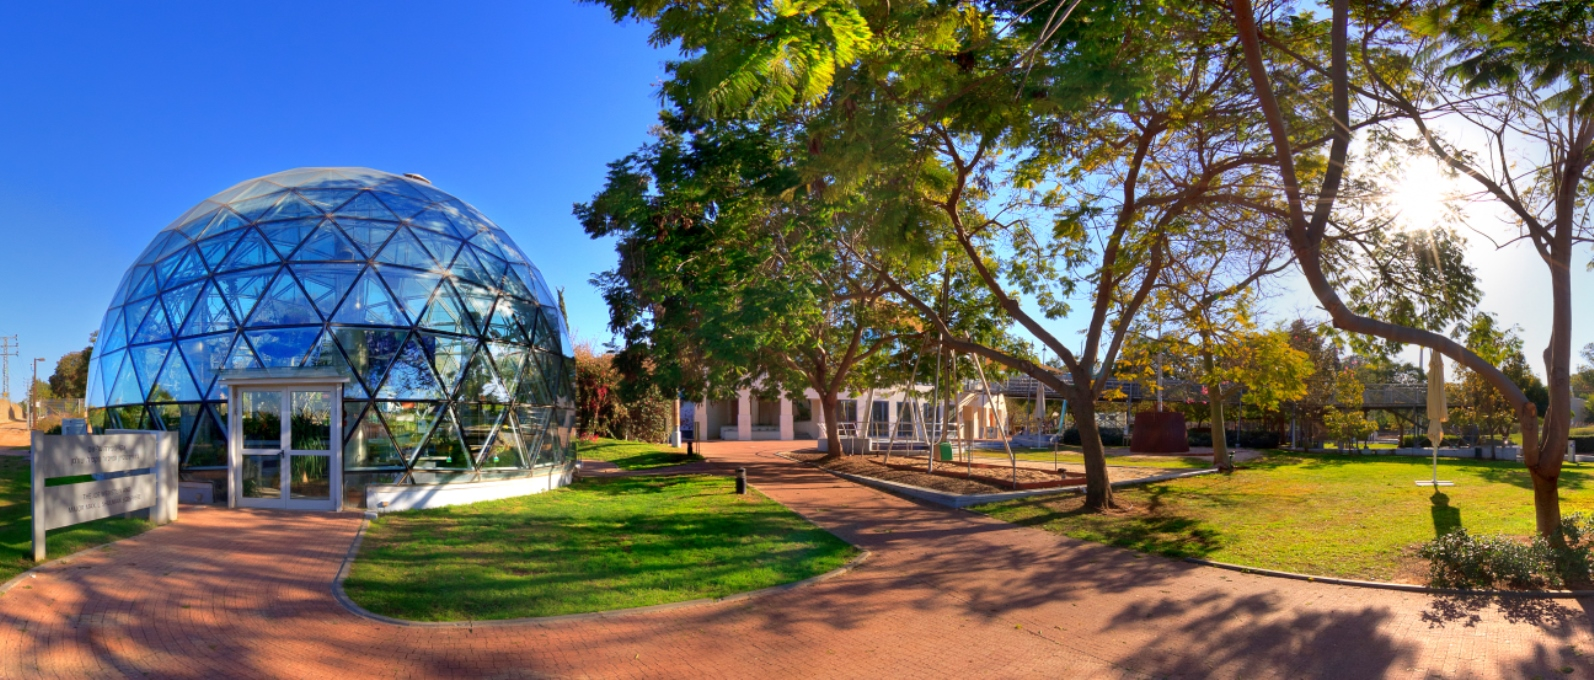 The Clore Garden of Science. Photo courtesy of the Weizmann Institute of Science.